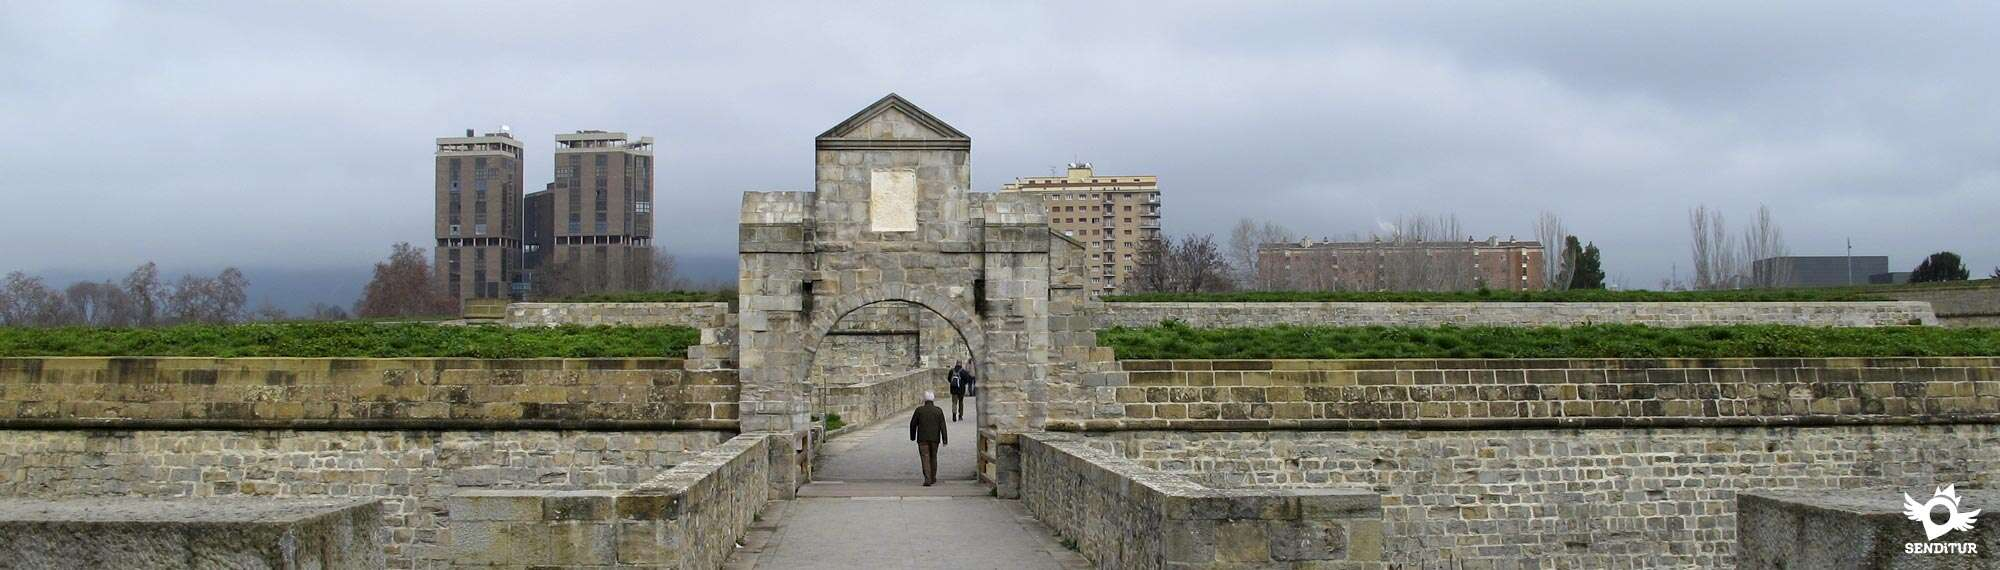 Pamplona City Walls Route